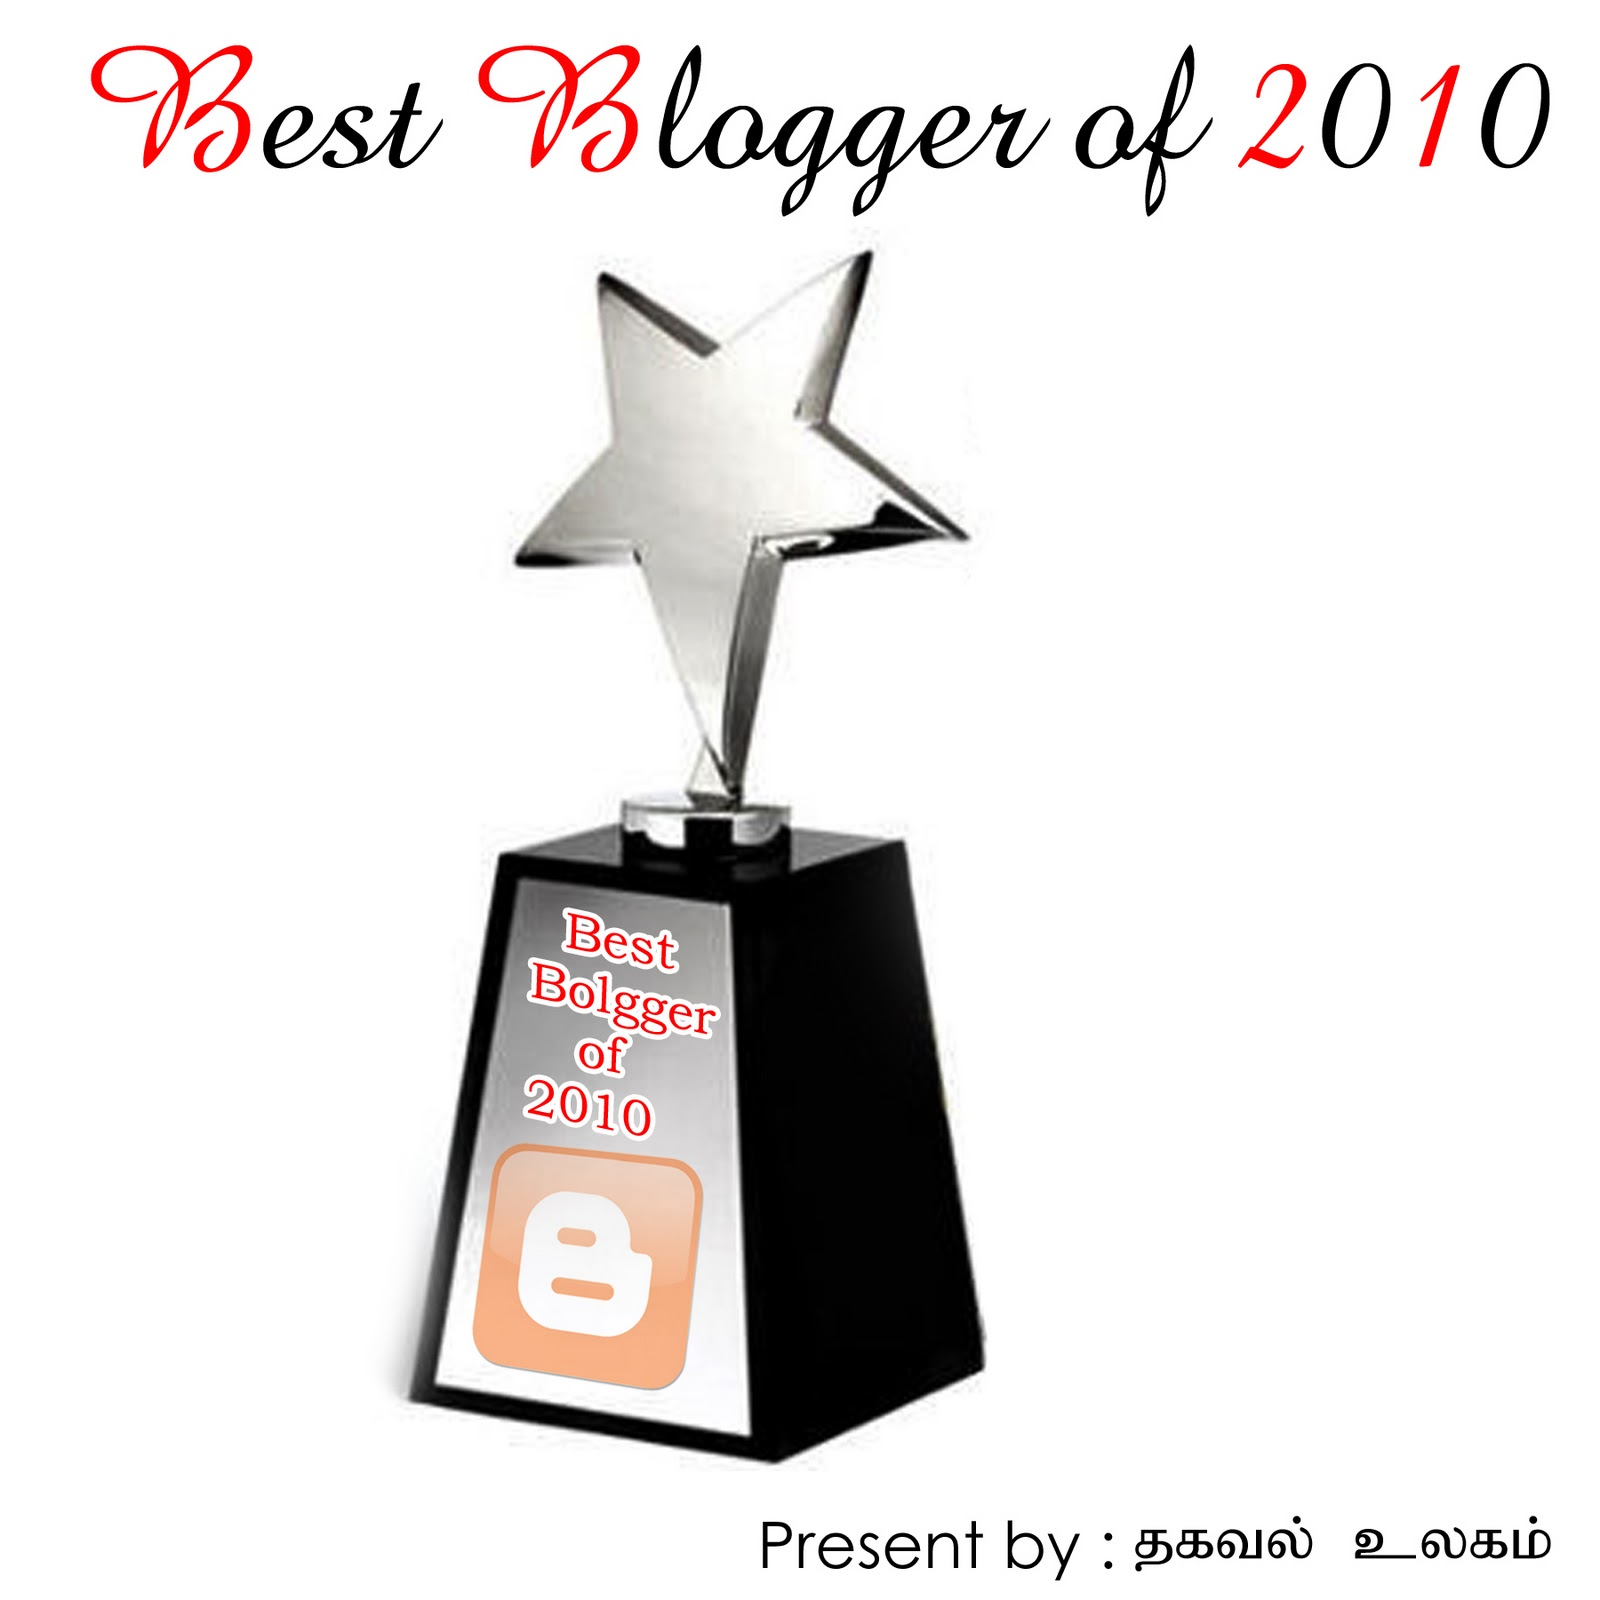 BEST BLOGGER OF 2010